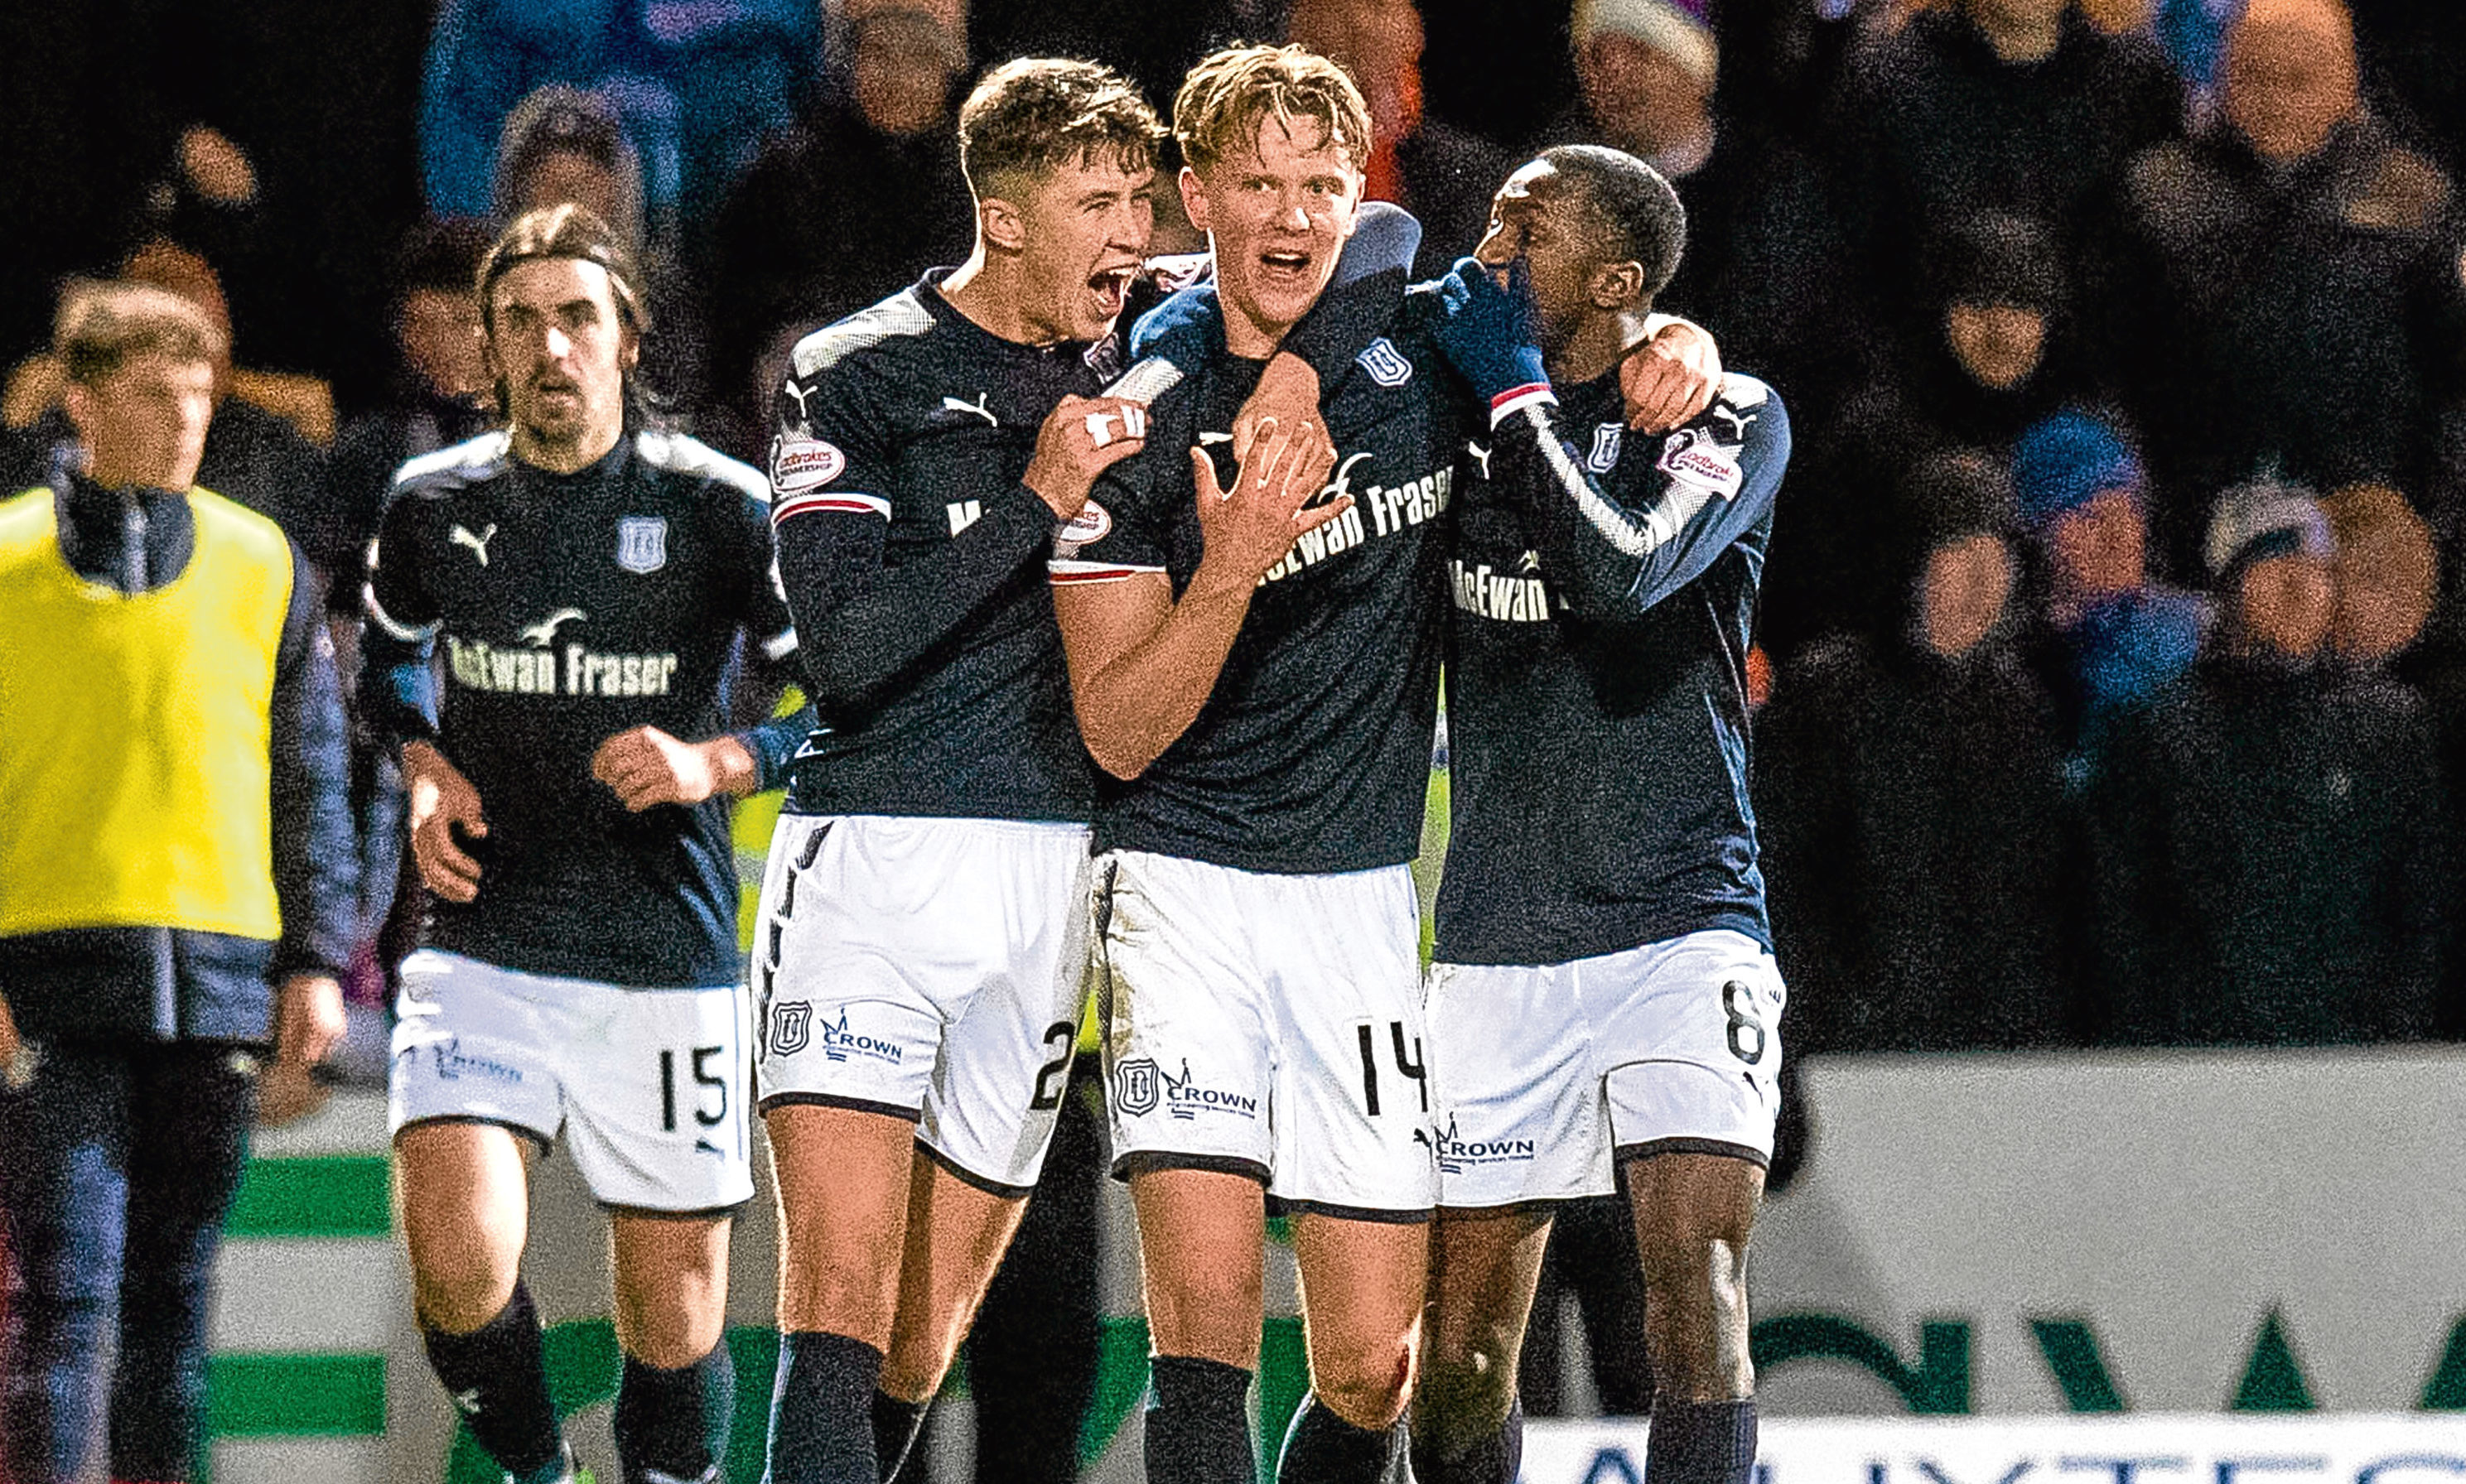 Dundee's Mark O'Hara (second from right) celebrates his winning goal against Rangers in November